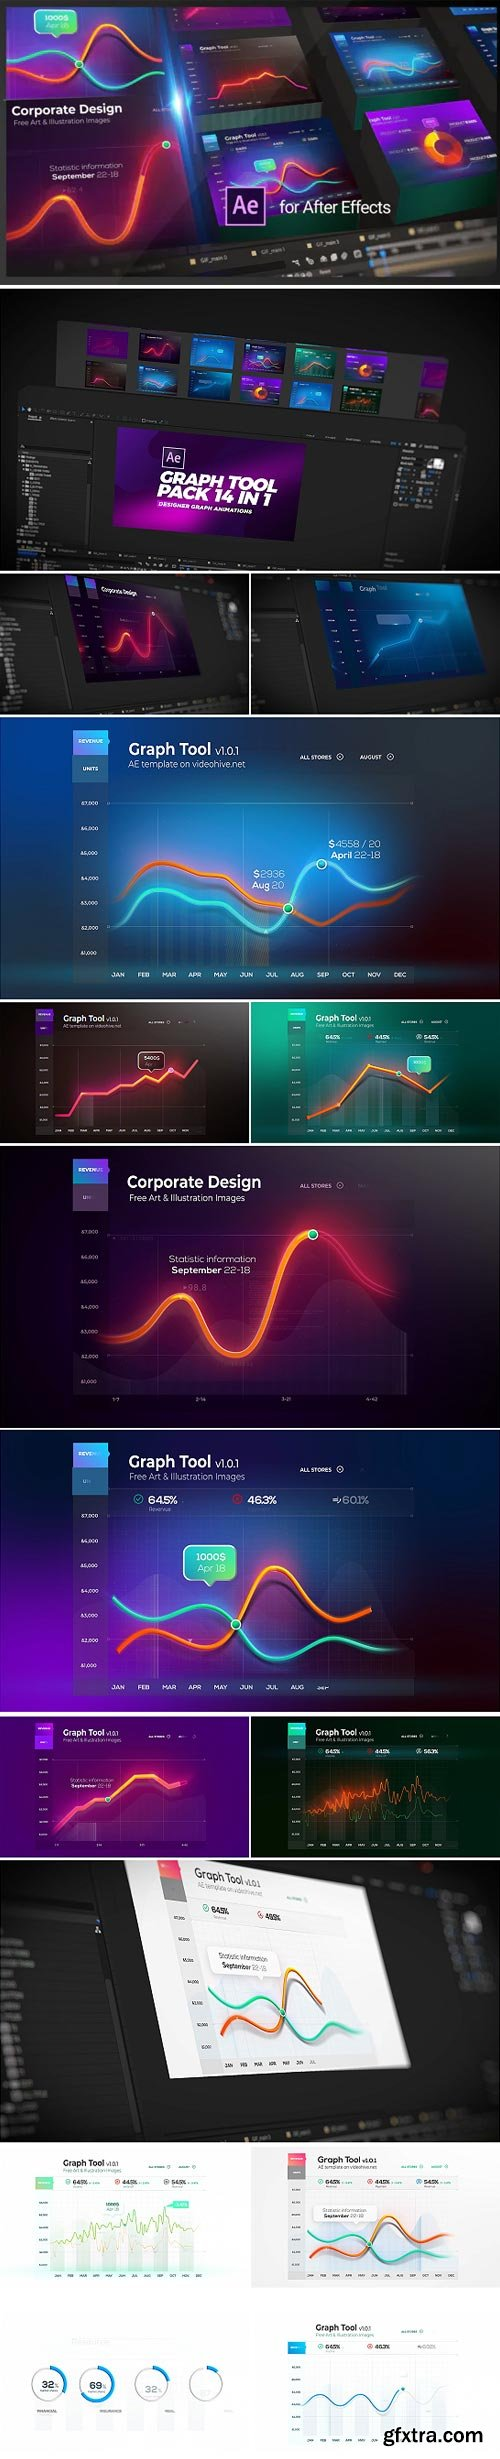 Videohive - Graph Tool